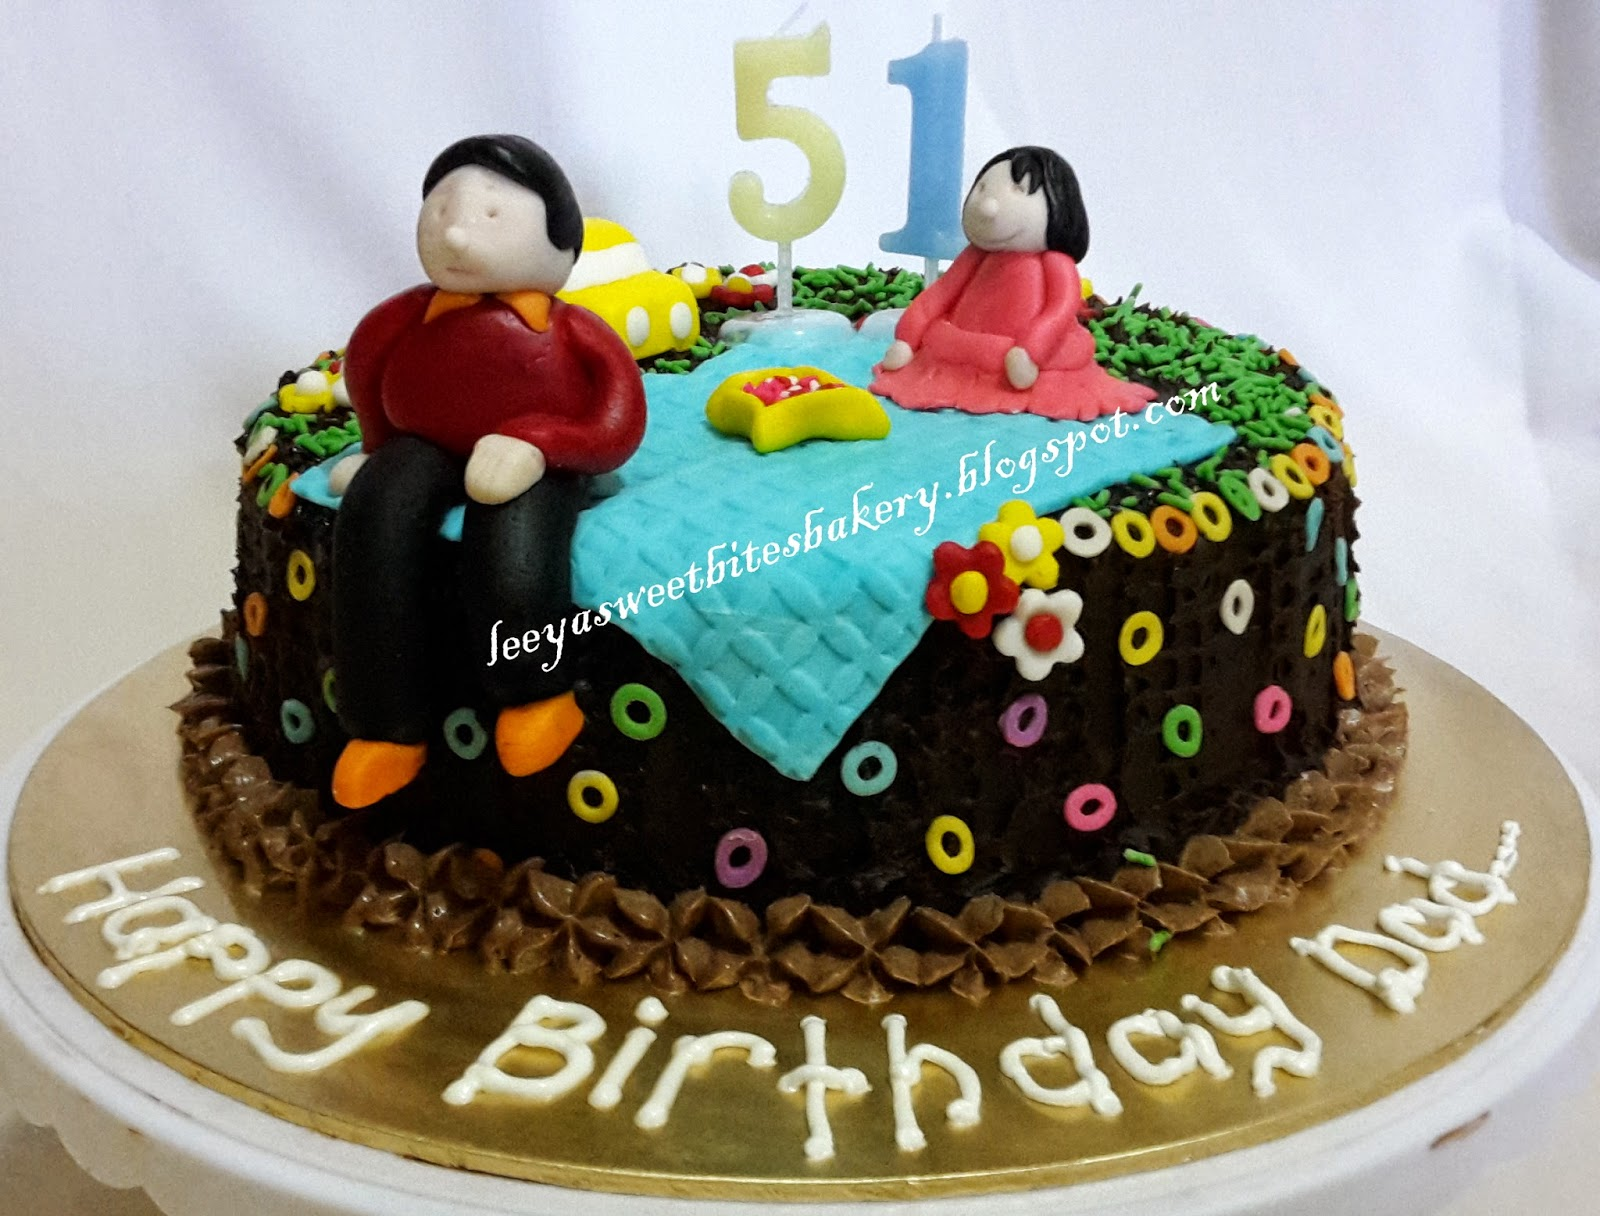 Birthday Cake For Father And Daughter Image Inspiration of Cake